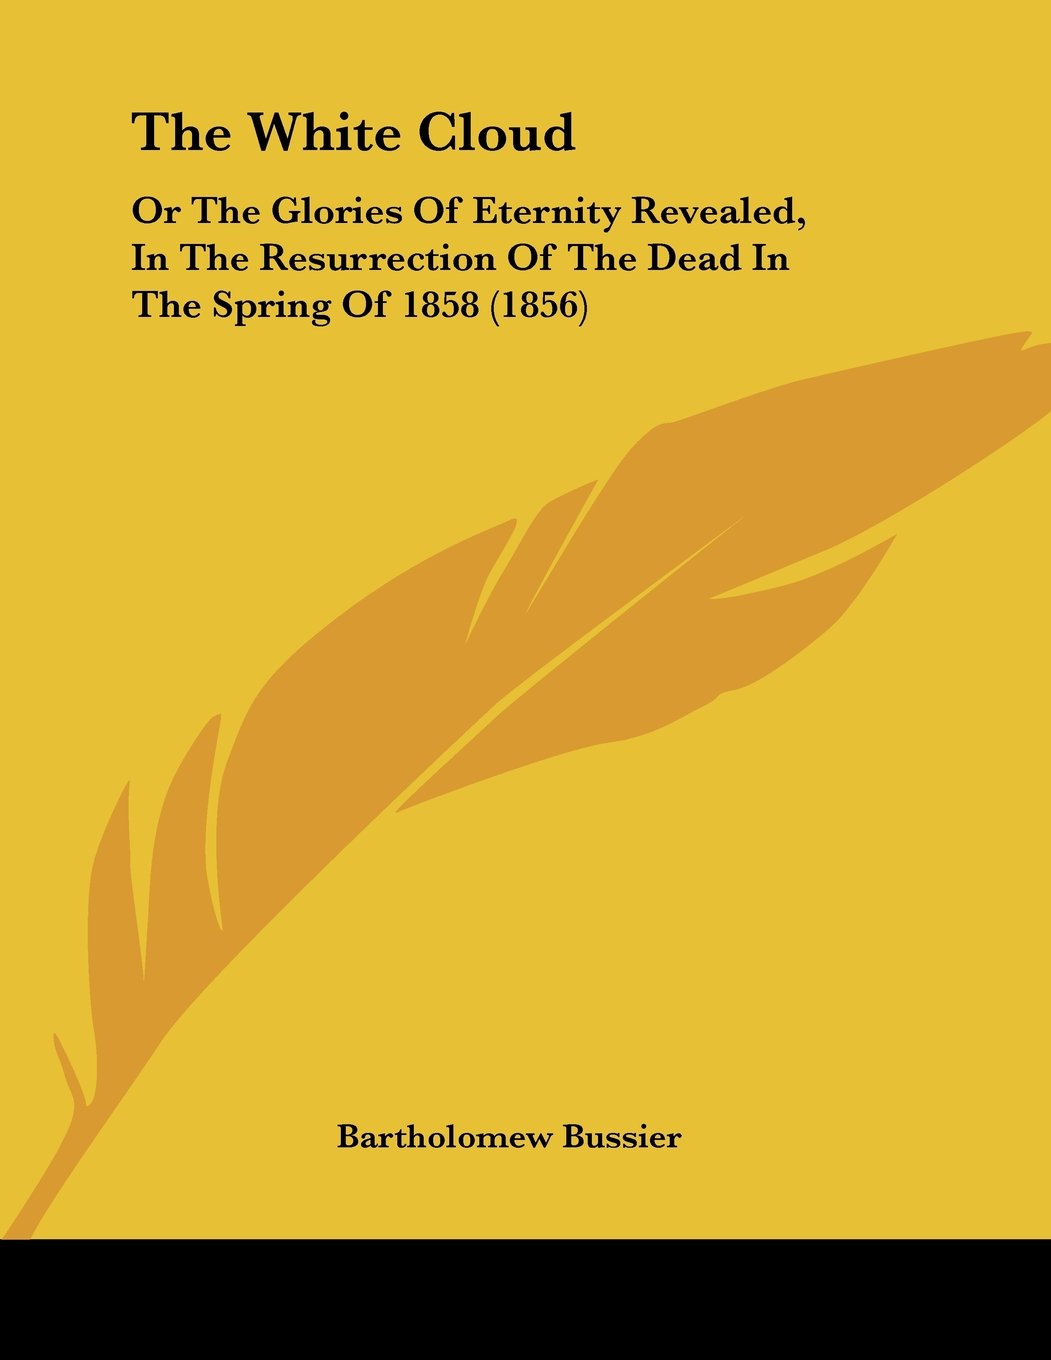 The White Cloud: Or The Glories Of Eternity Revealed, In The Resurrection Of The Dead In The Spring Of 1858 (1856) PDF